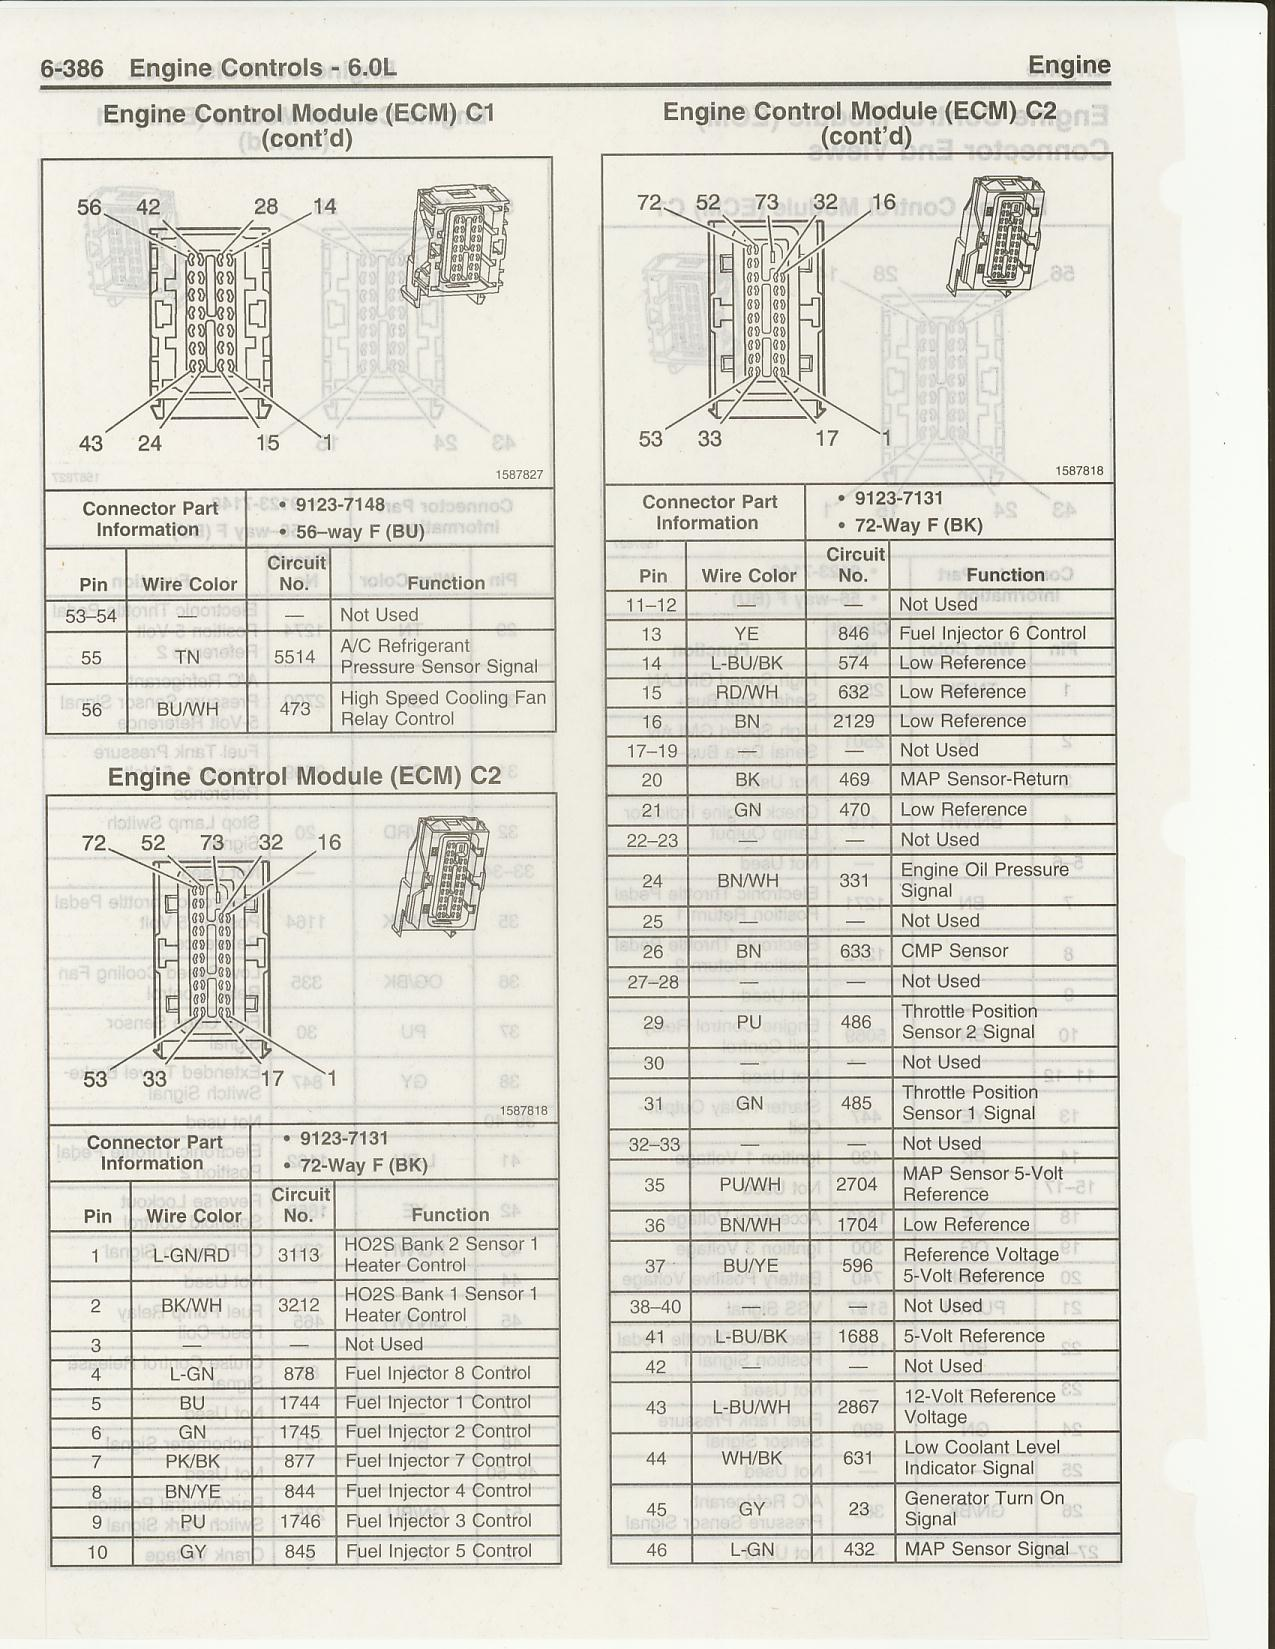 2003 Cadillac Cts Transmission Pin Wiring Diagrams Factory Diagram Pinouts And Page 4 Ls1tech Camaro Firebird Ls2 C1c2